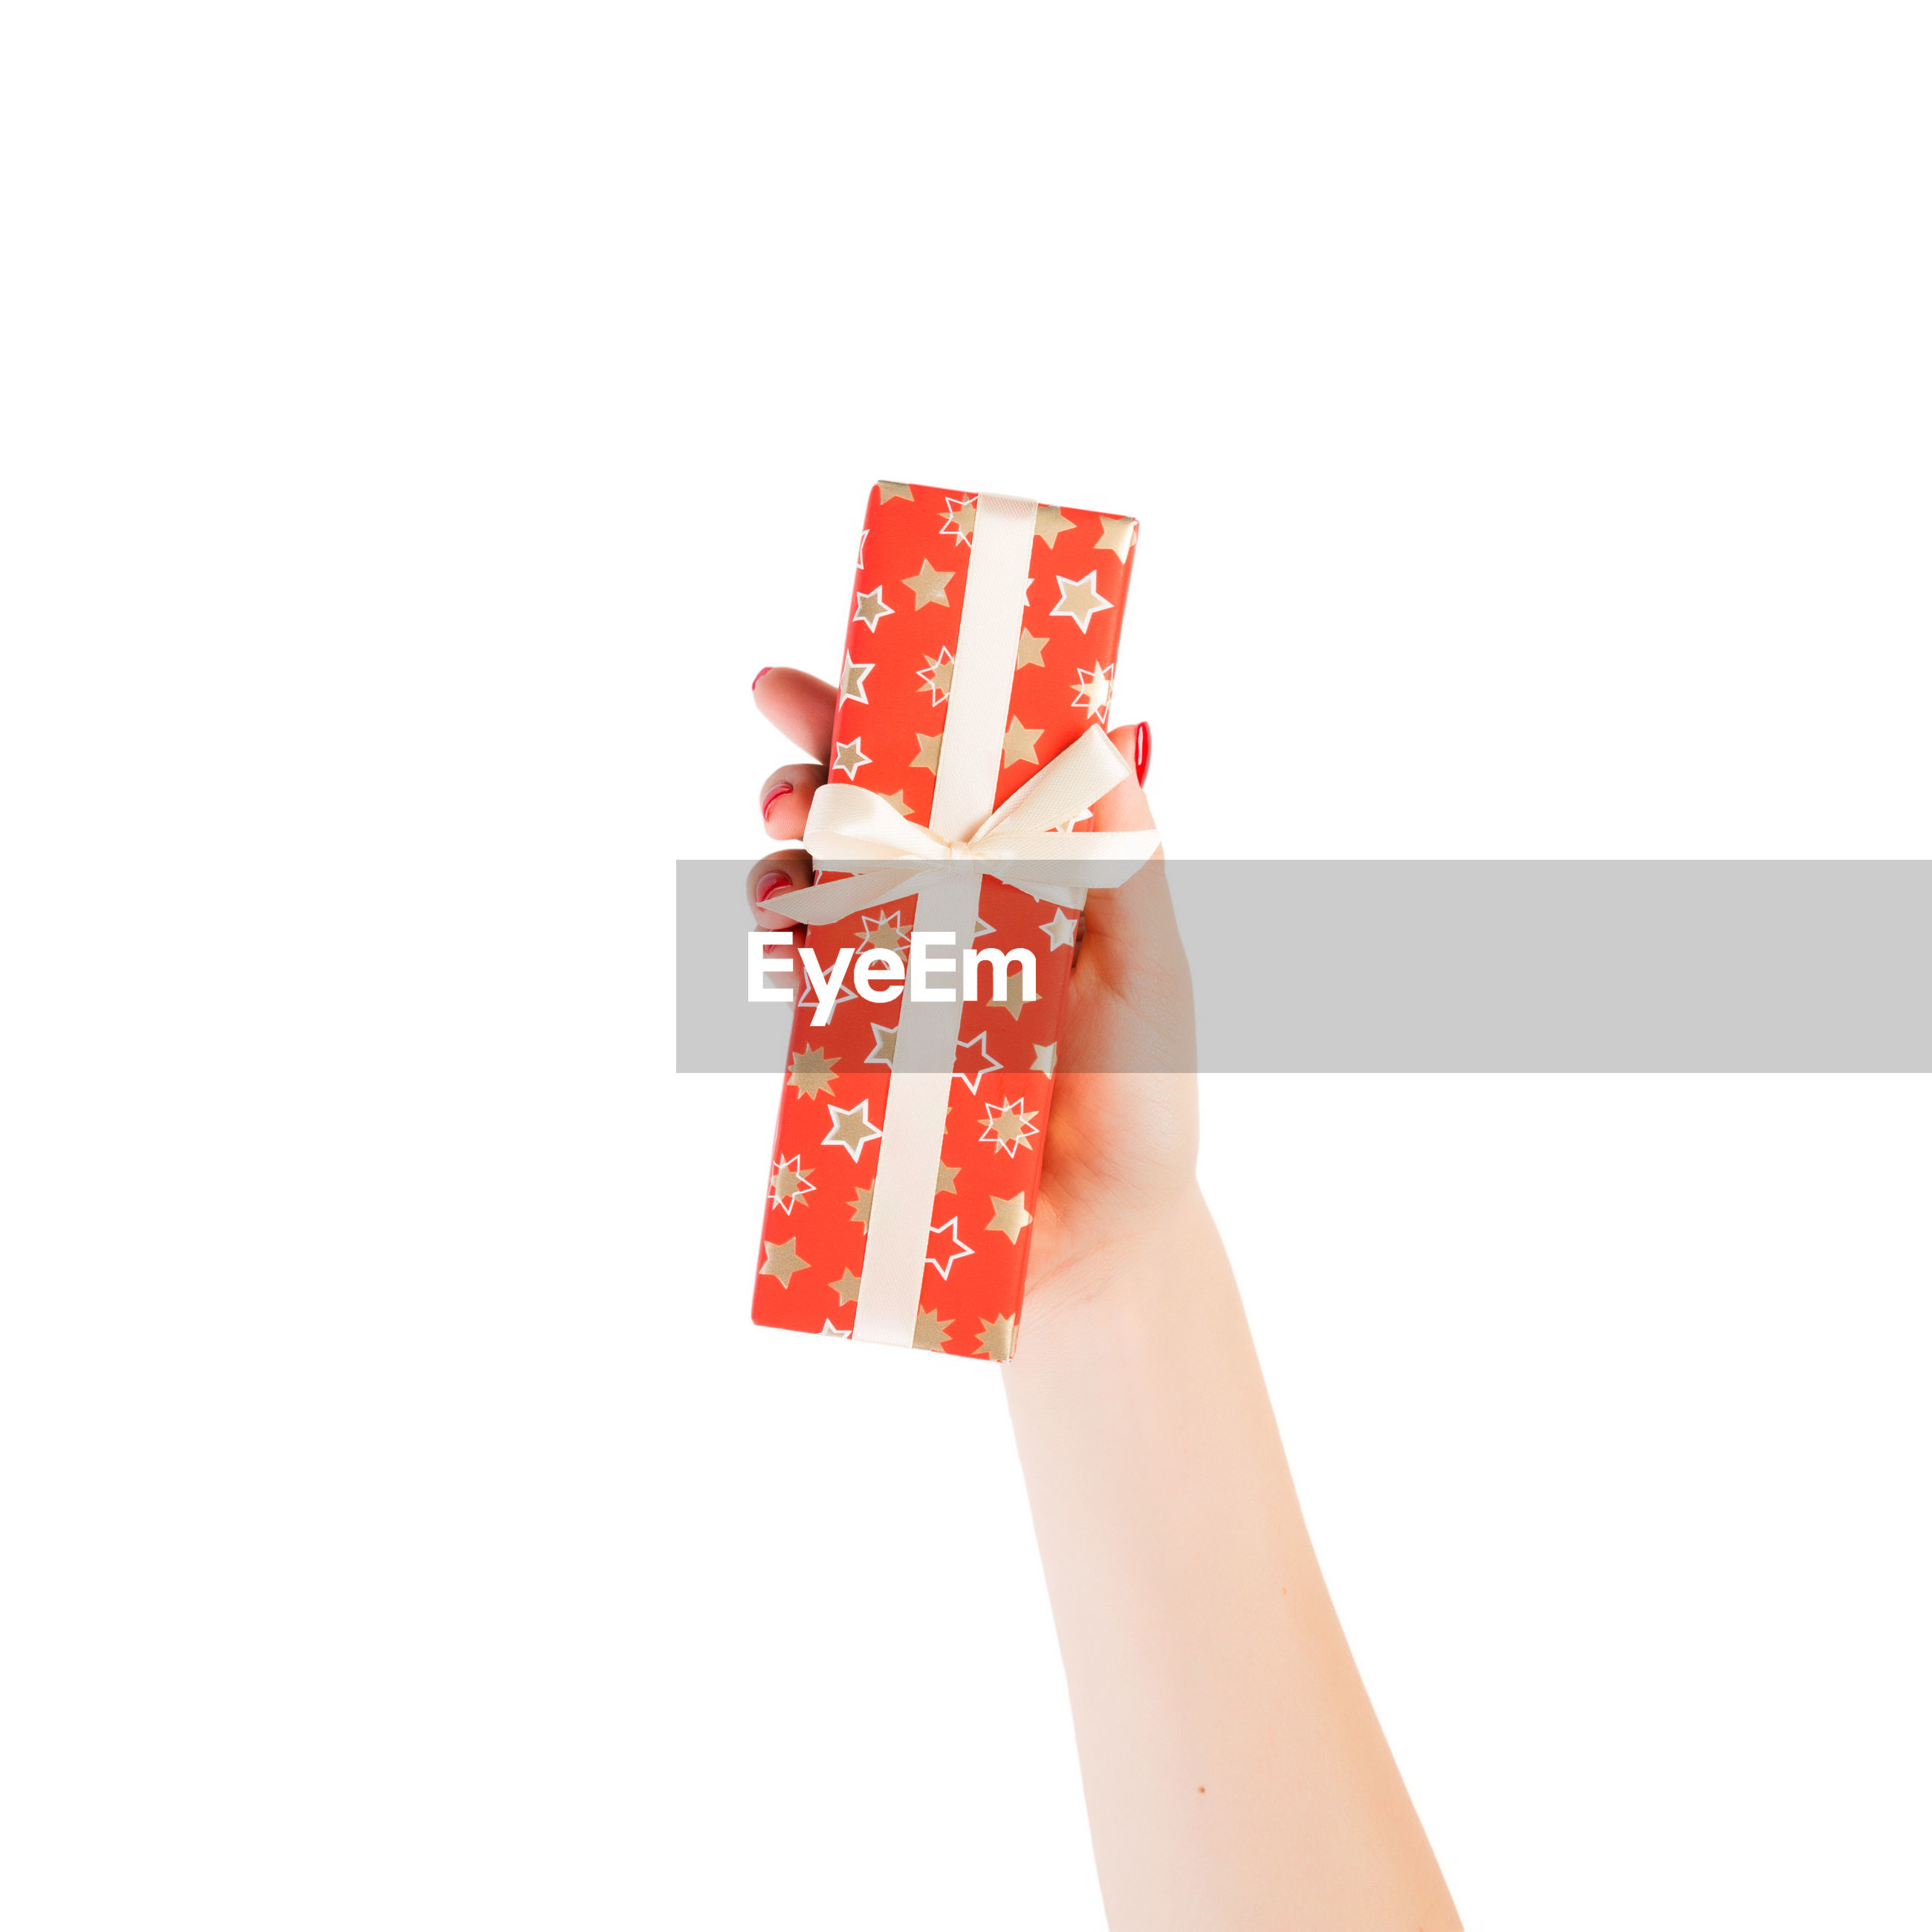 Close-up of hand holding gift against white background